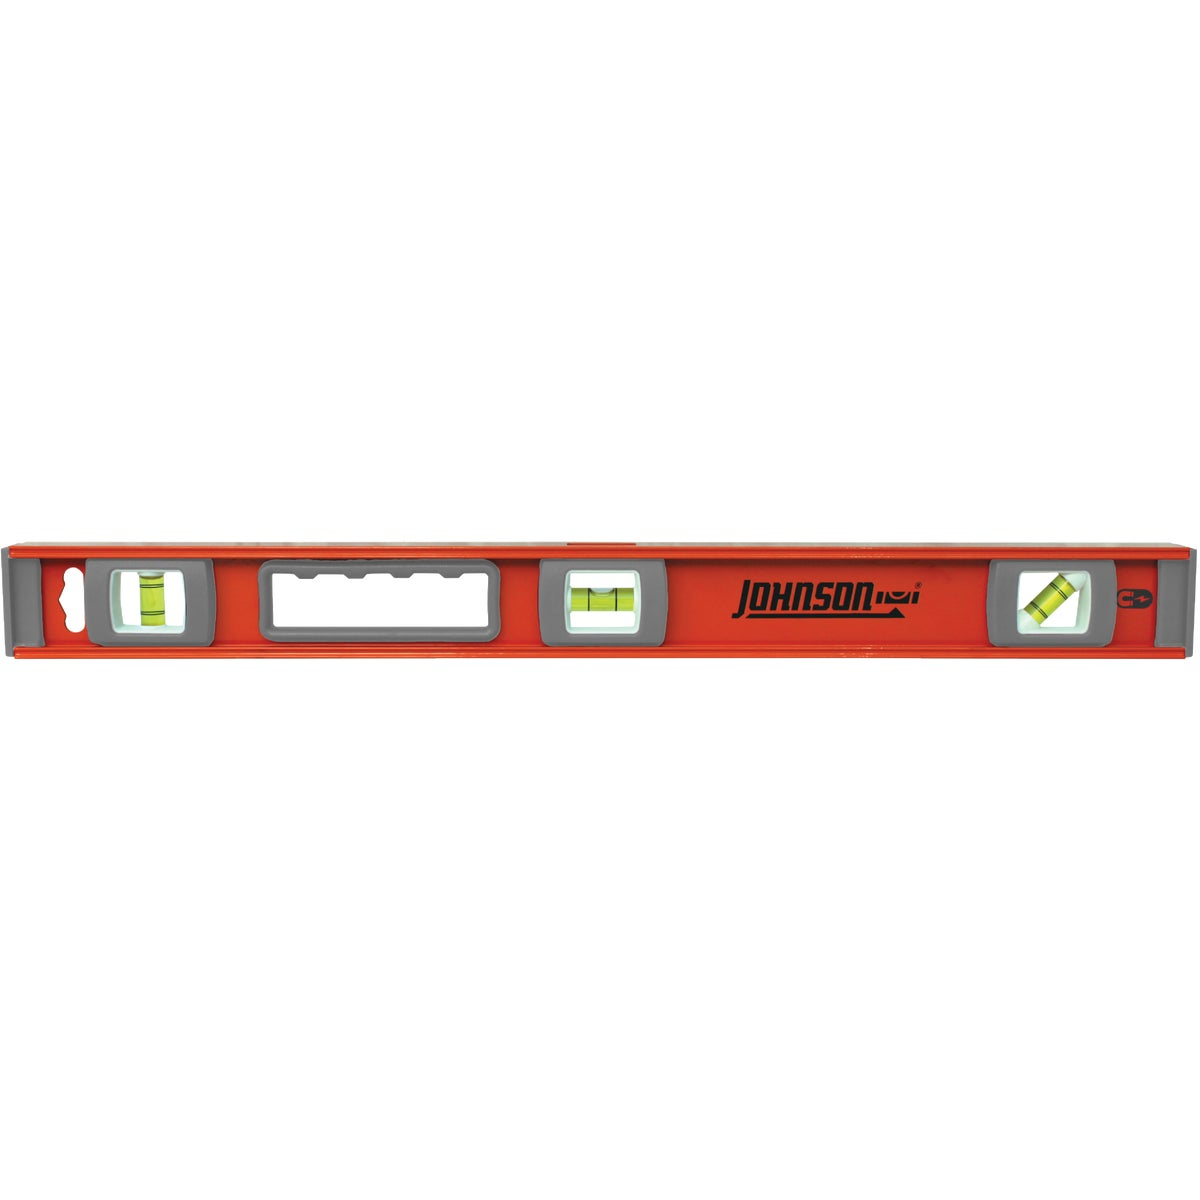 "24"" MAG HD I-BEAM LEVEL - 3824 by Johnson Level & Tool"